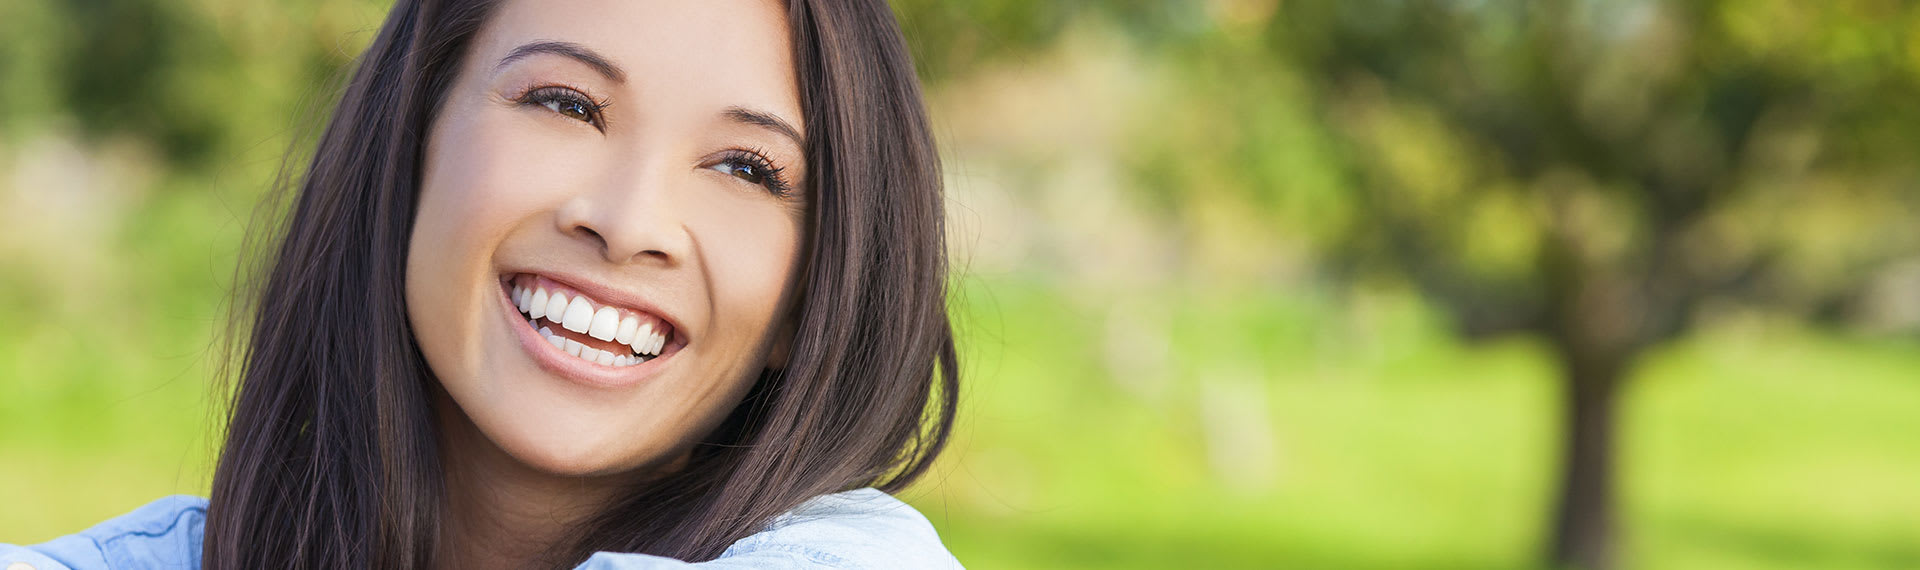 Invisalign Services | Guildford Smiles Dentistry